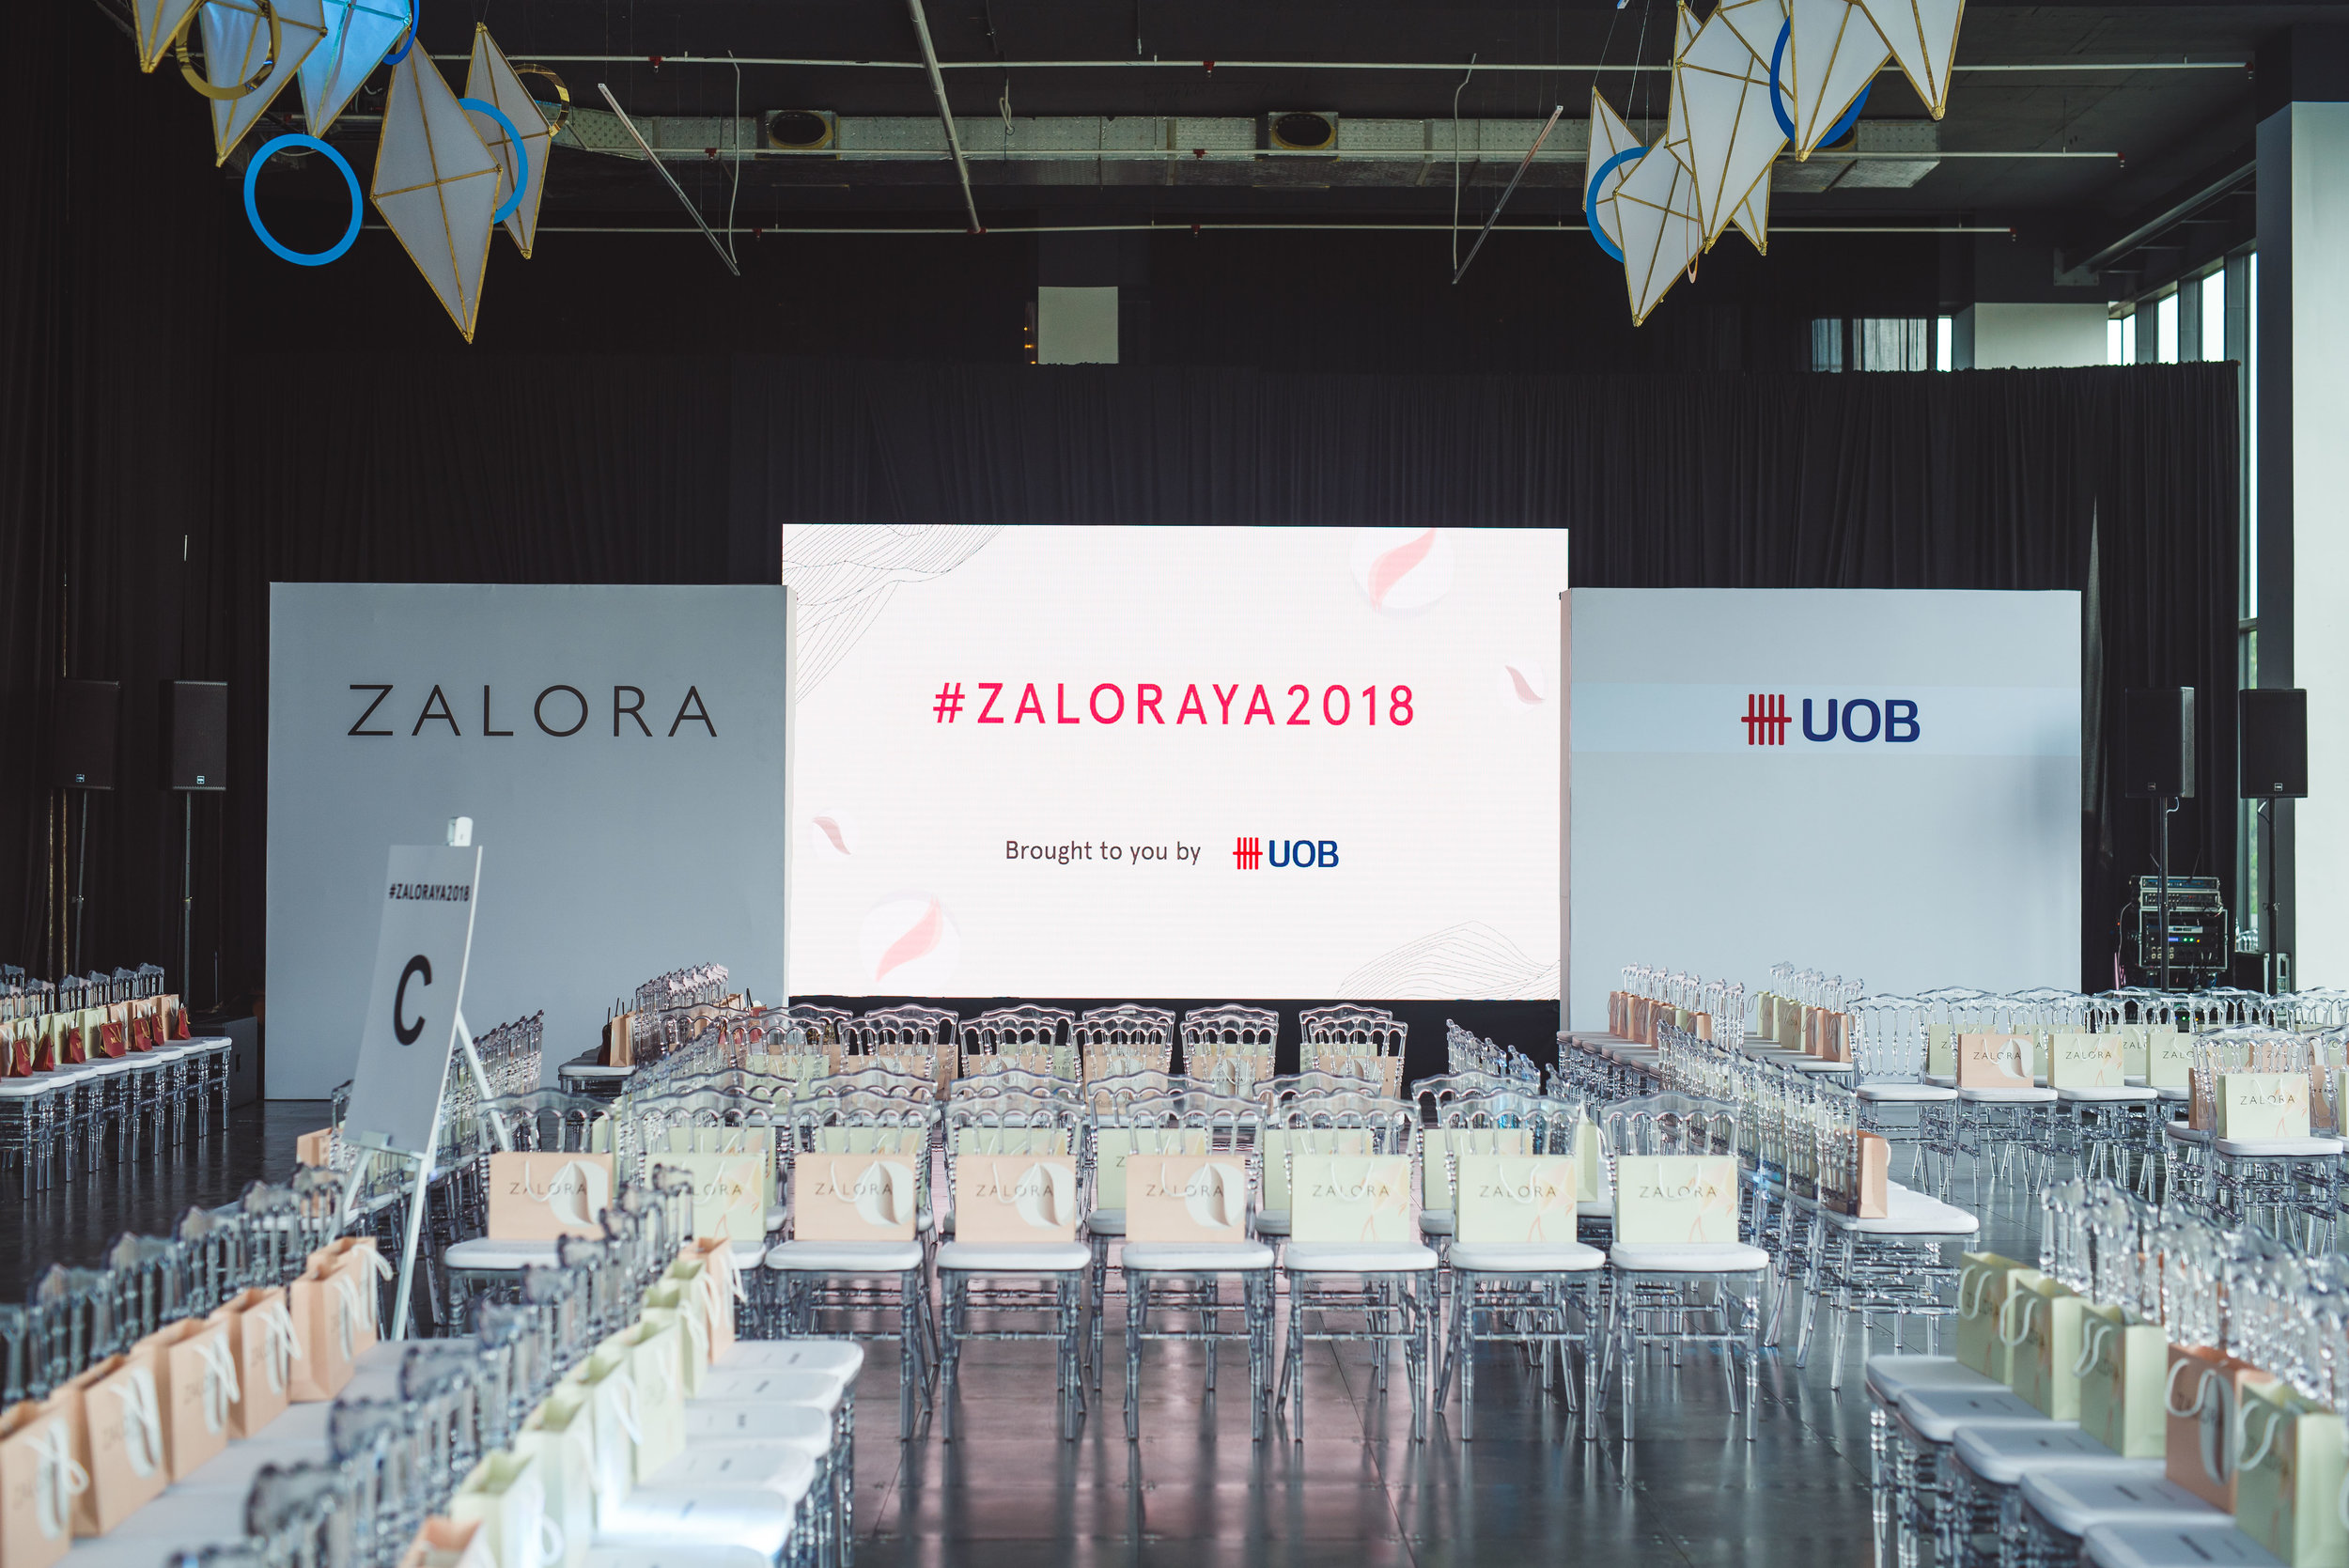 Zalora Raya 2018  - PPS_9423 - Photo by Saufi Nadzri.jpg